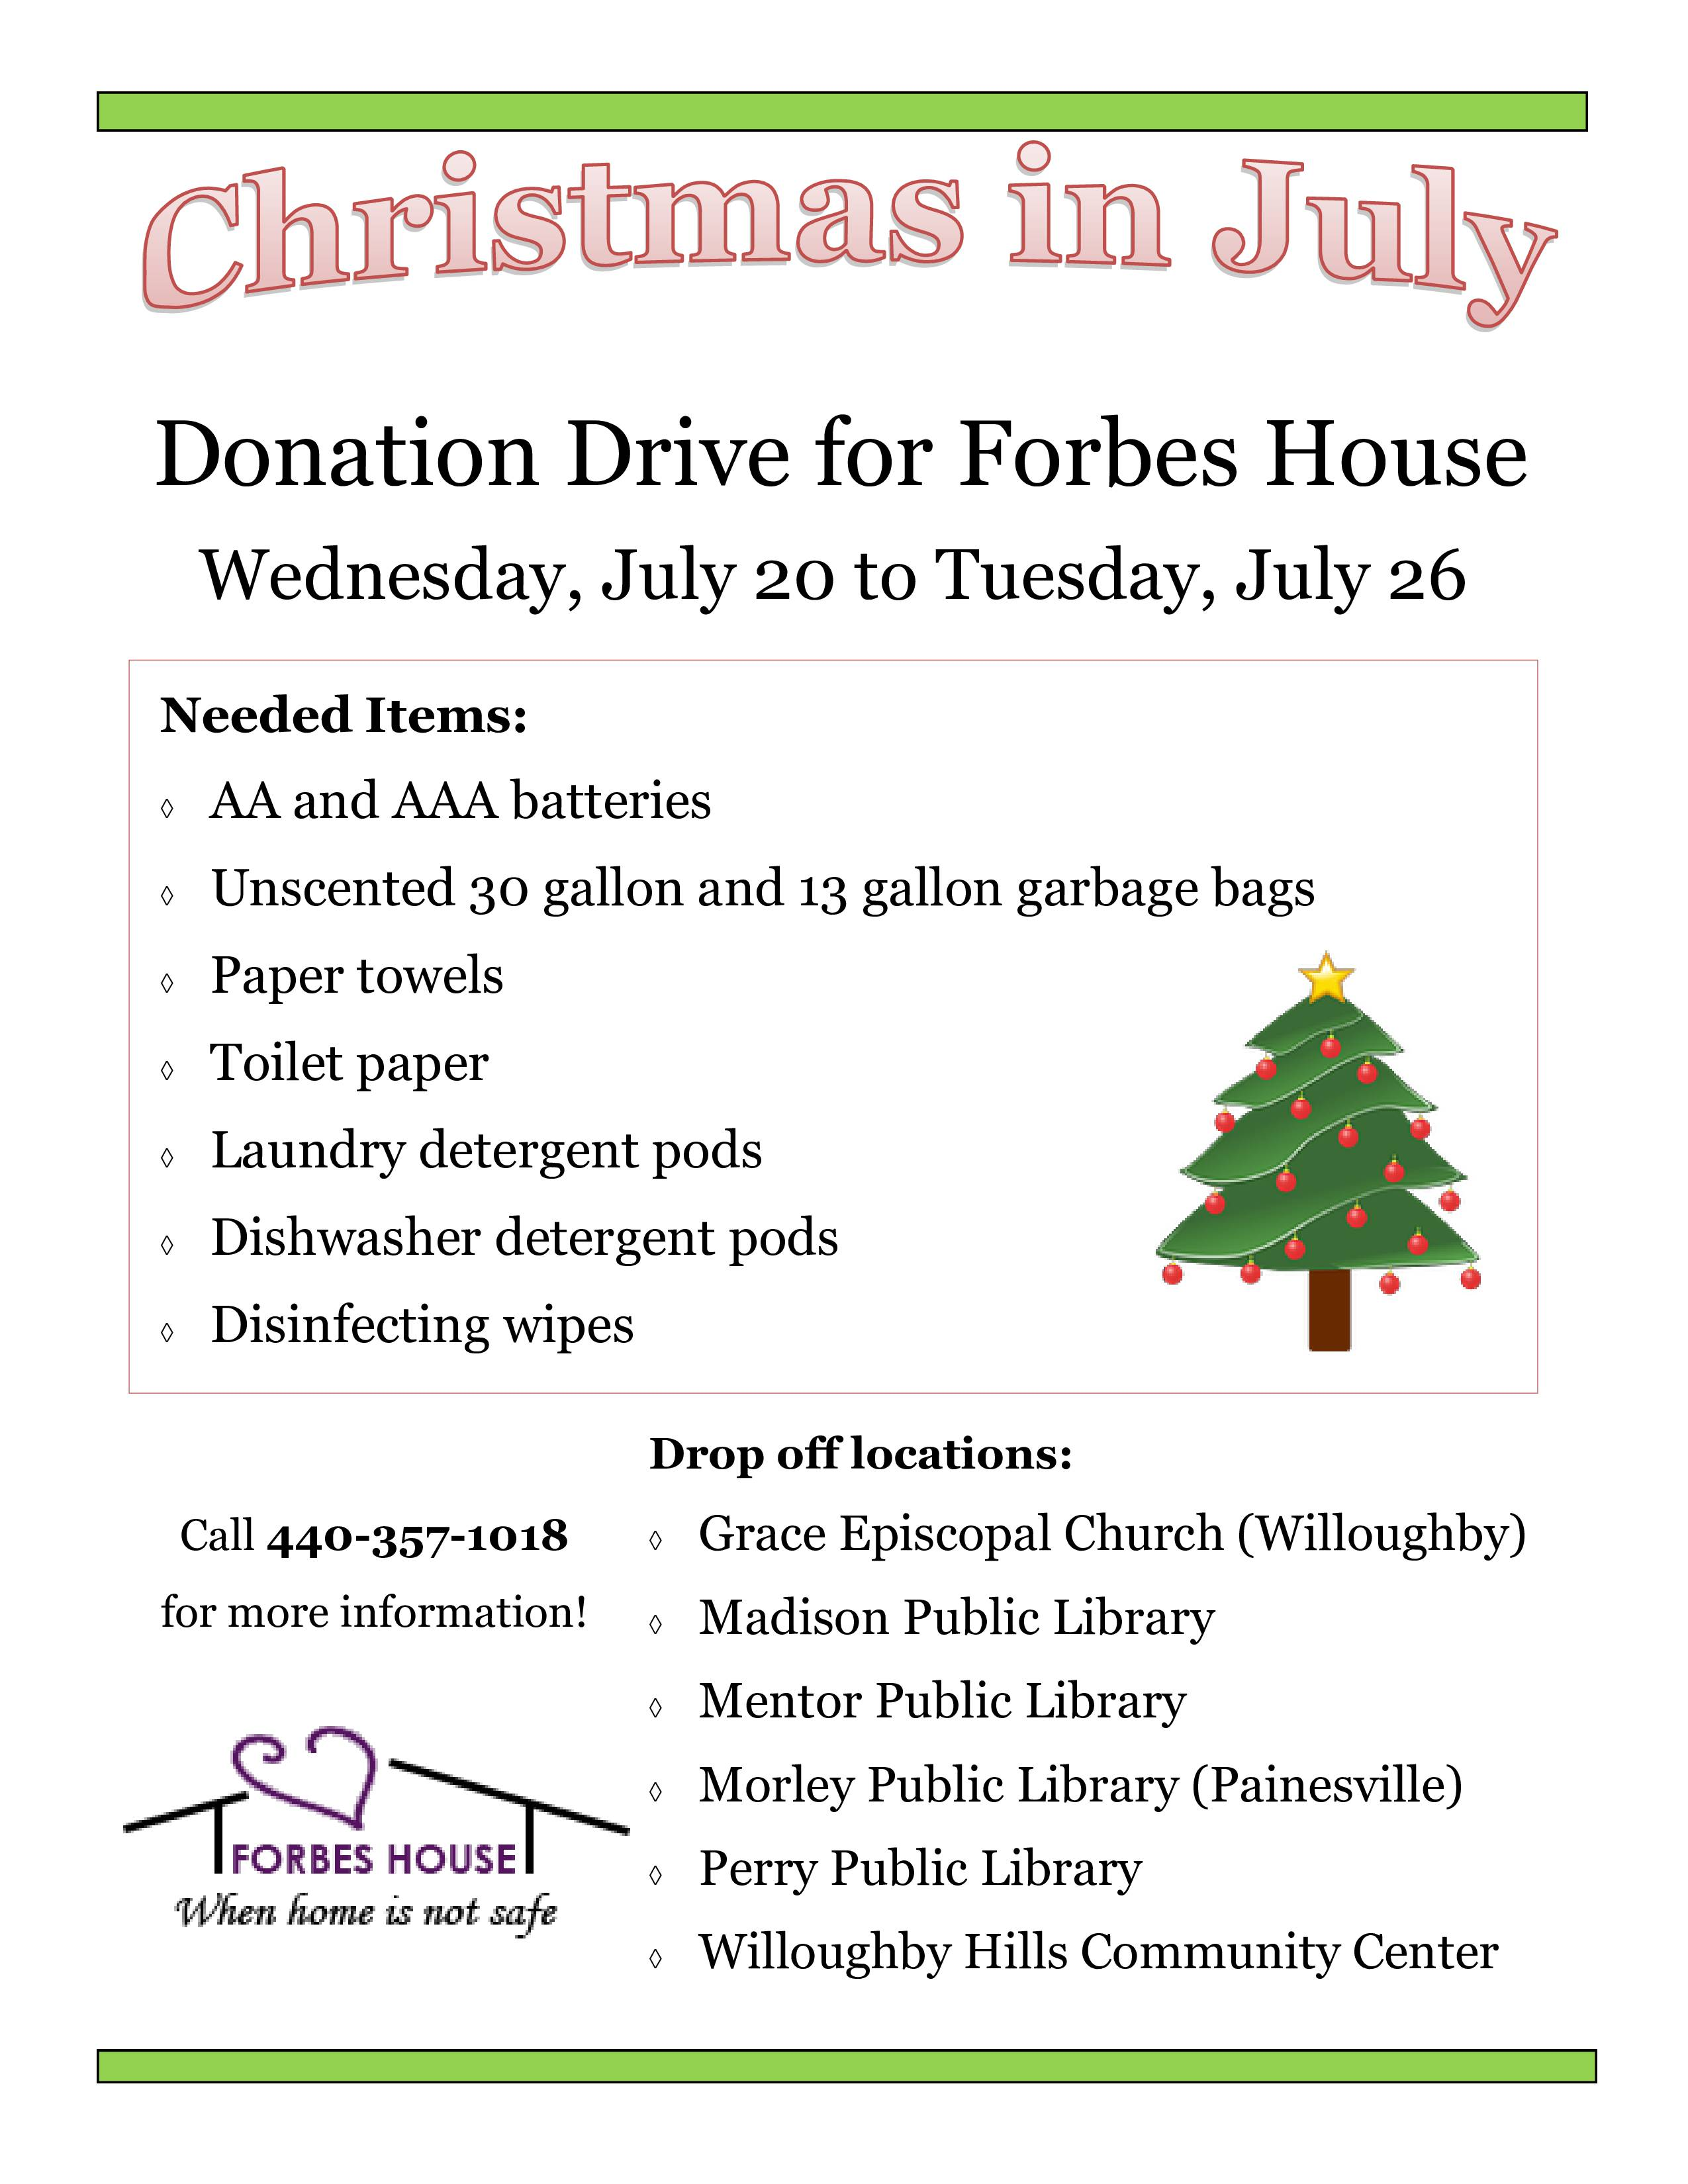 Forbes House is hosting a donation drive July 20-26. Call 440-357-1018 to learn more.